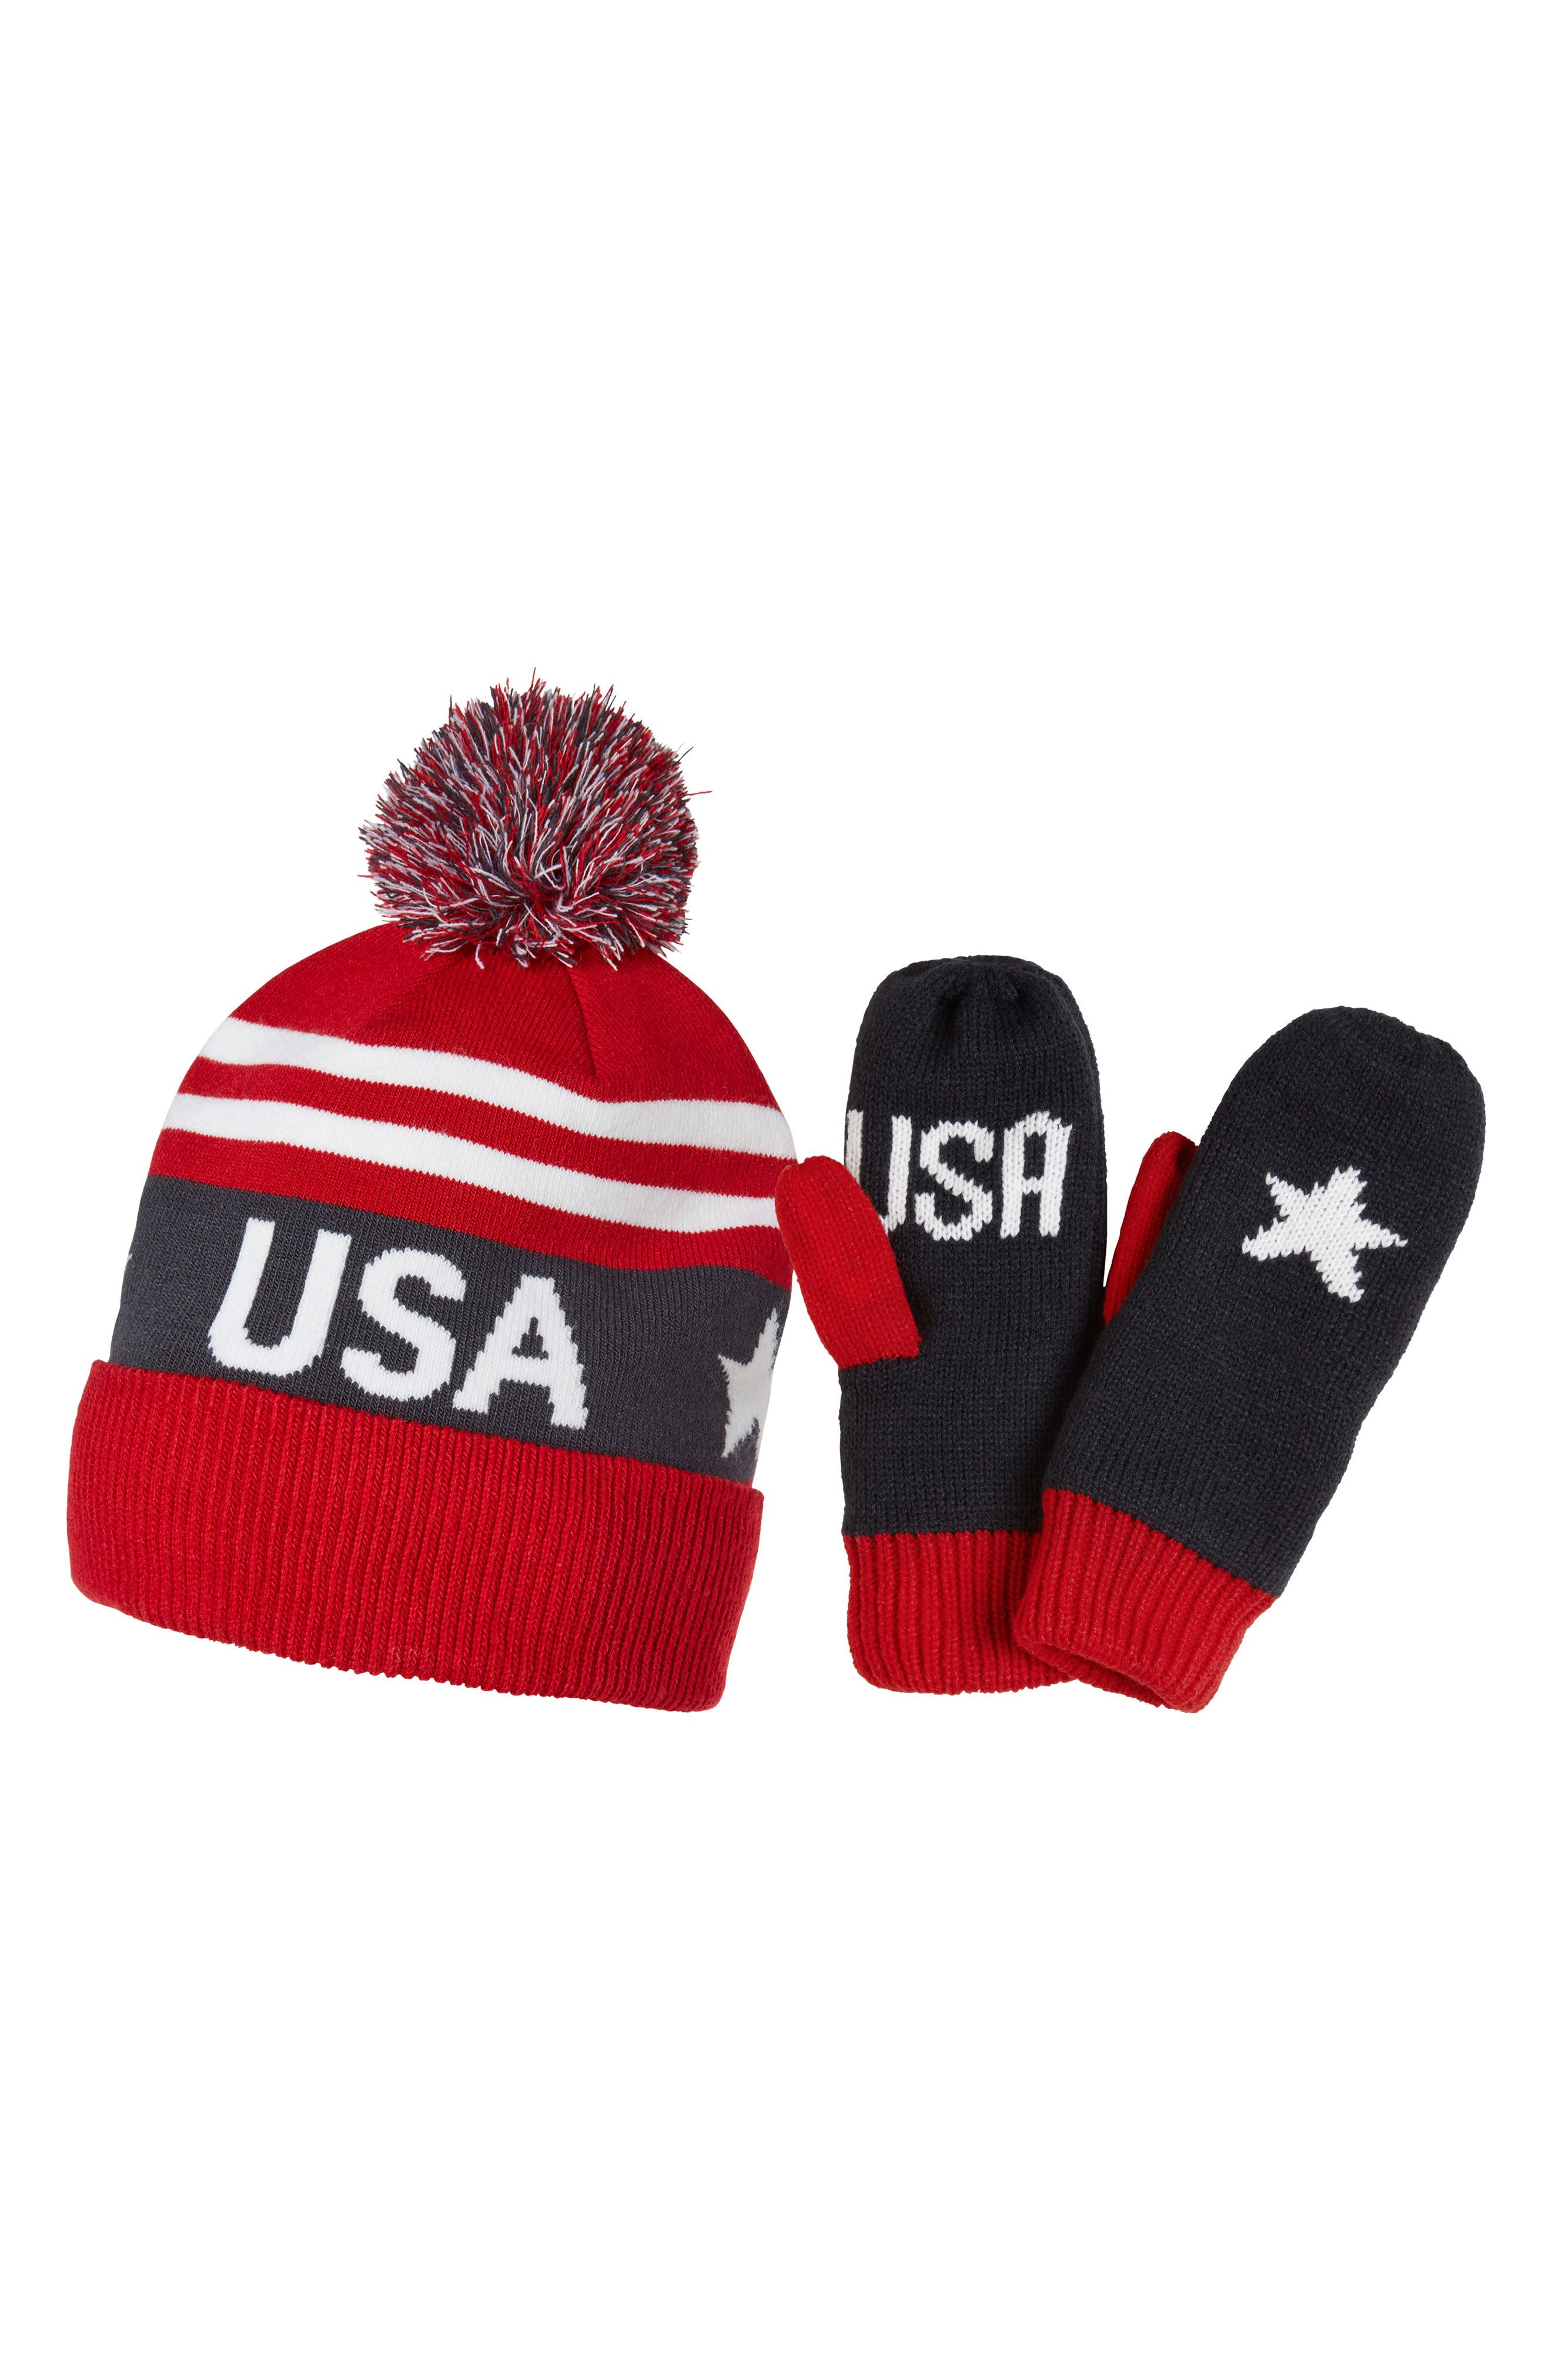 Going For Gold Knit Cap & Mittens Gift Set,                         Main,                         color, Olympian Blue/ Usa